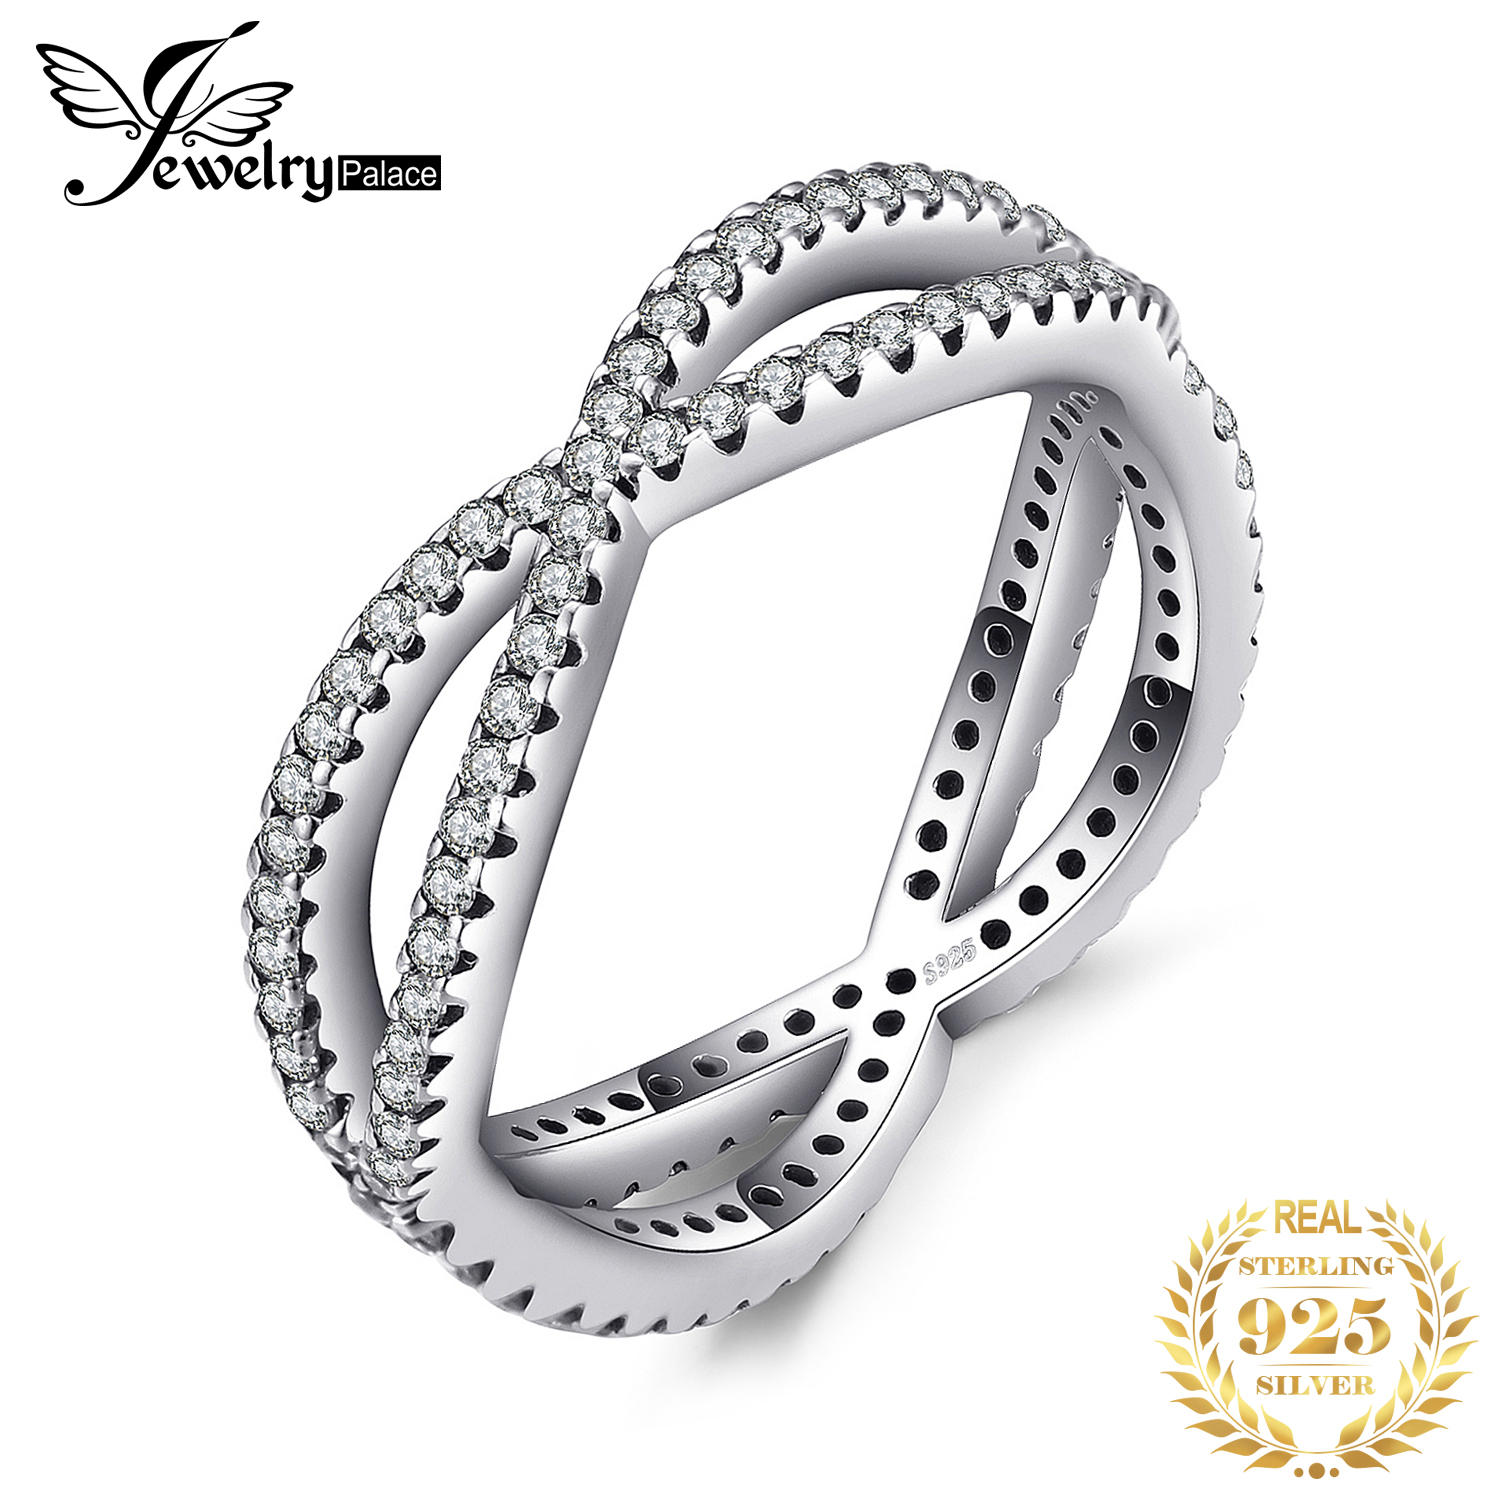 JewelryPalace 925 Sterling Silver Cosmic Lines Statement Ring Gifts For Women Anniversary Fashion Jewelry New Arrival 2018